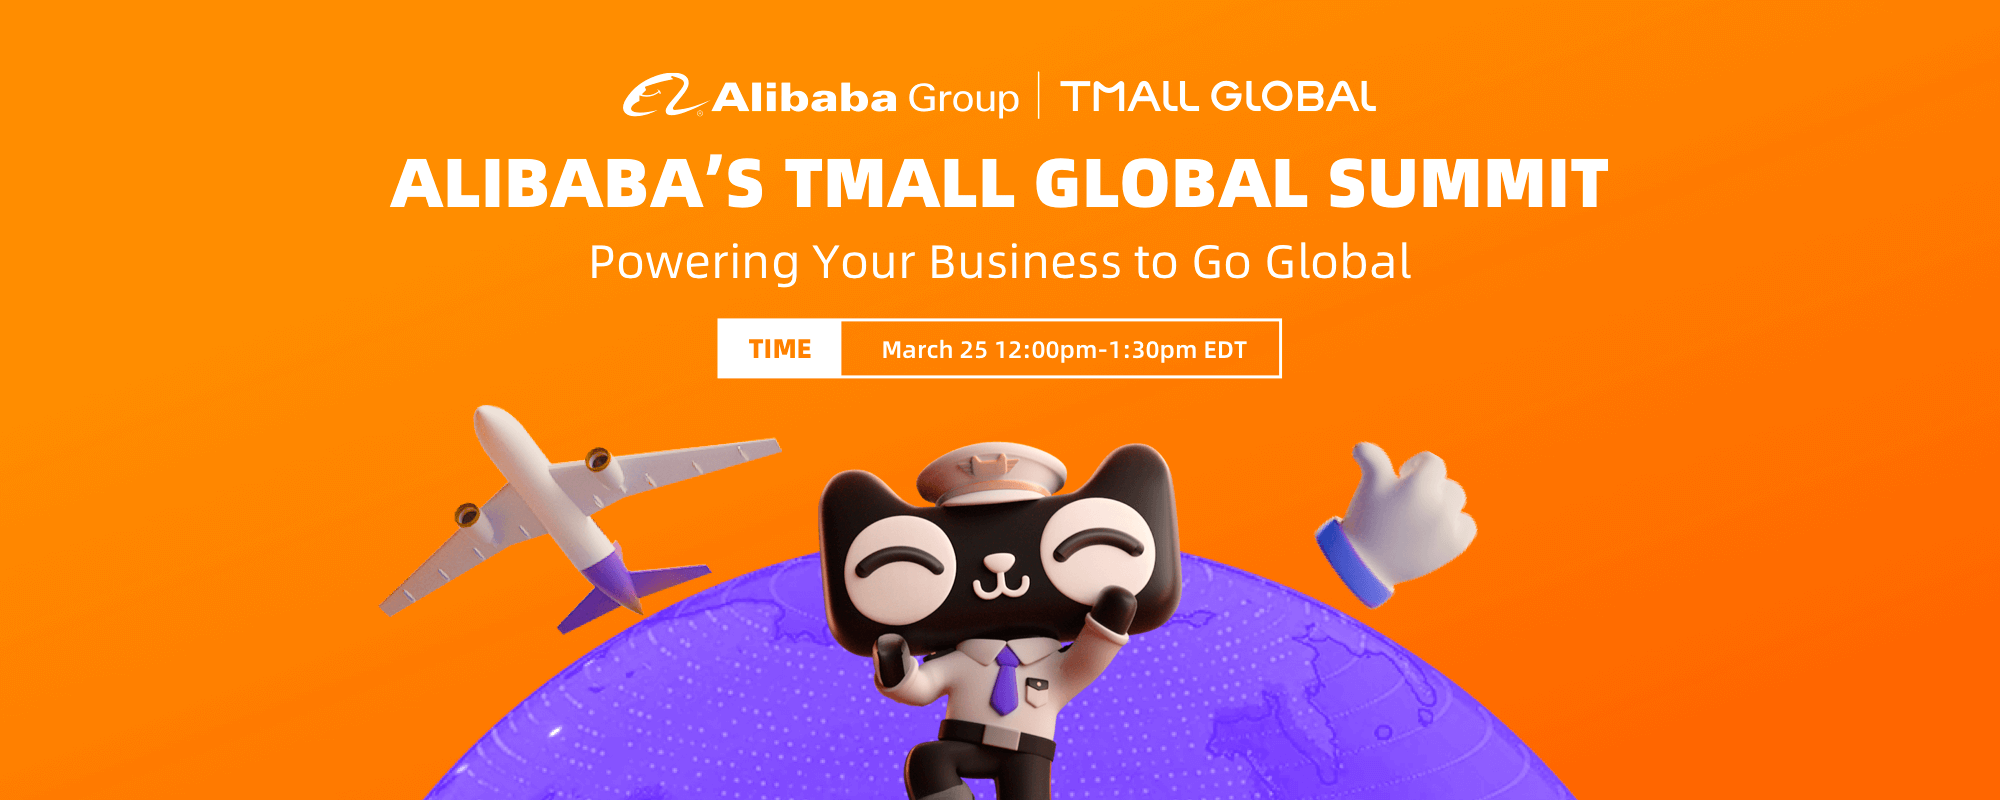 Alibaba's Tmall Global Summitt, Powering Your Business to Go Global. March 25.